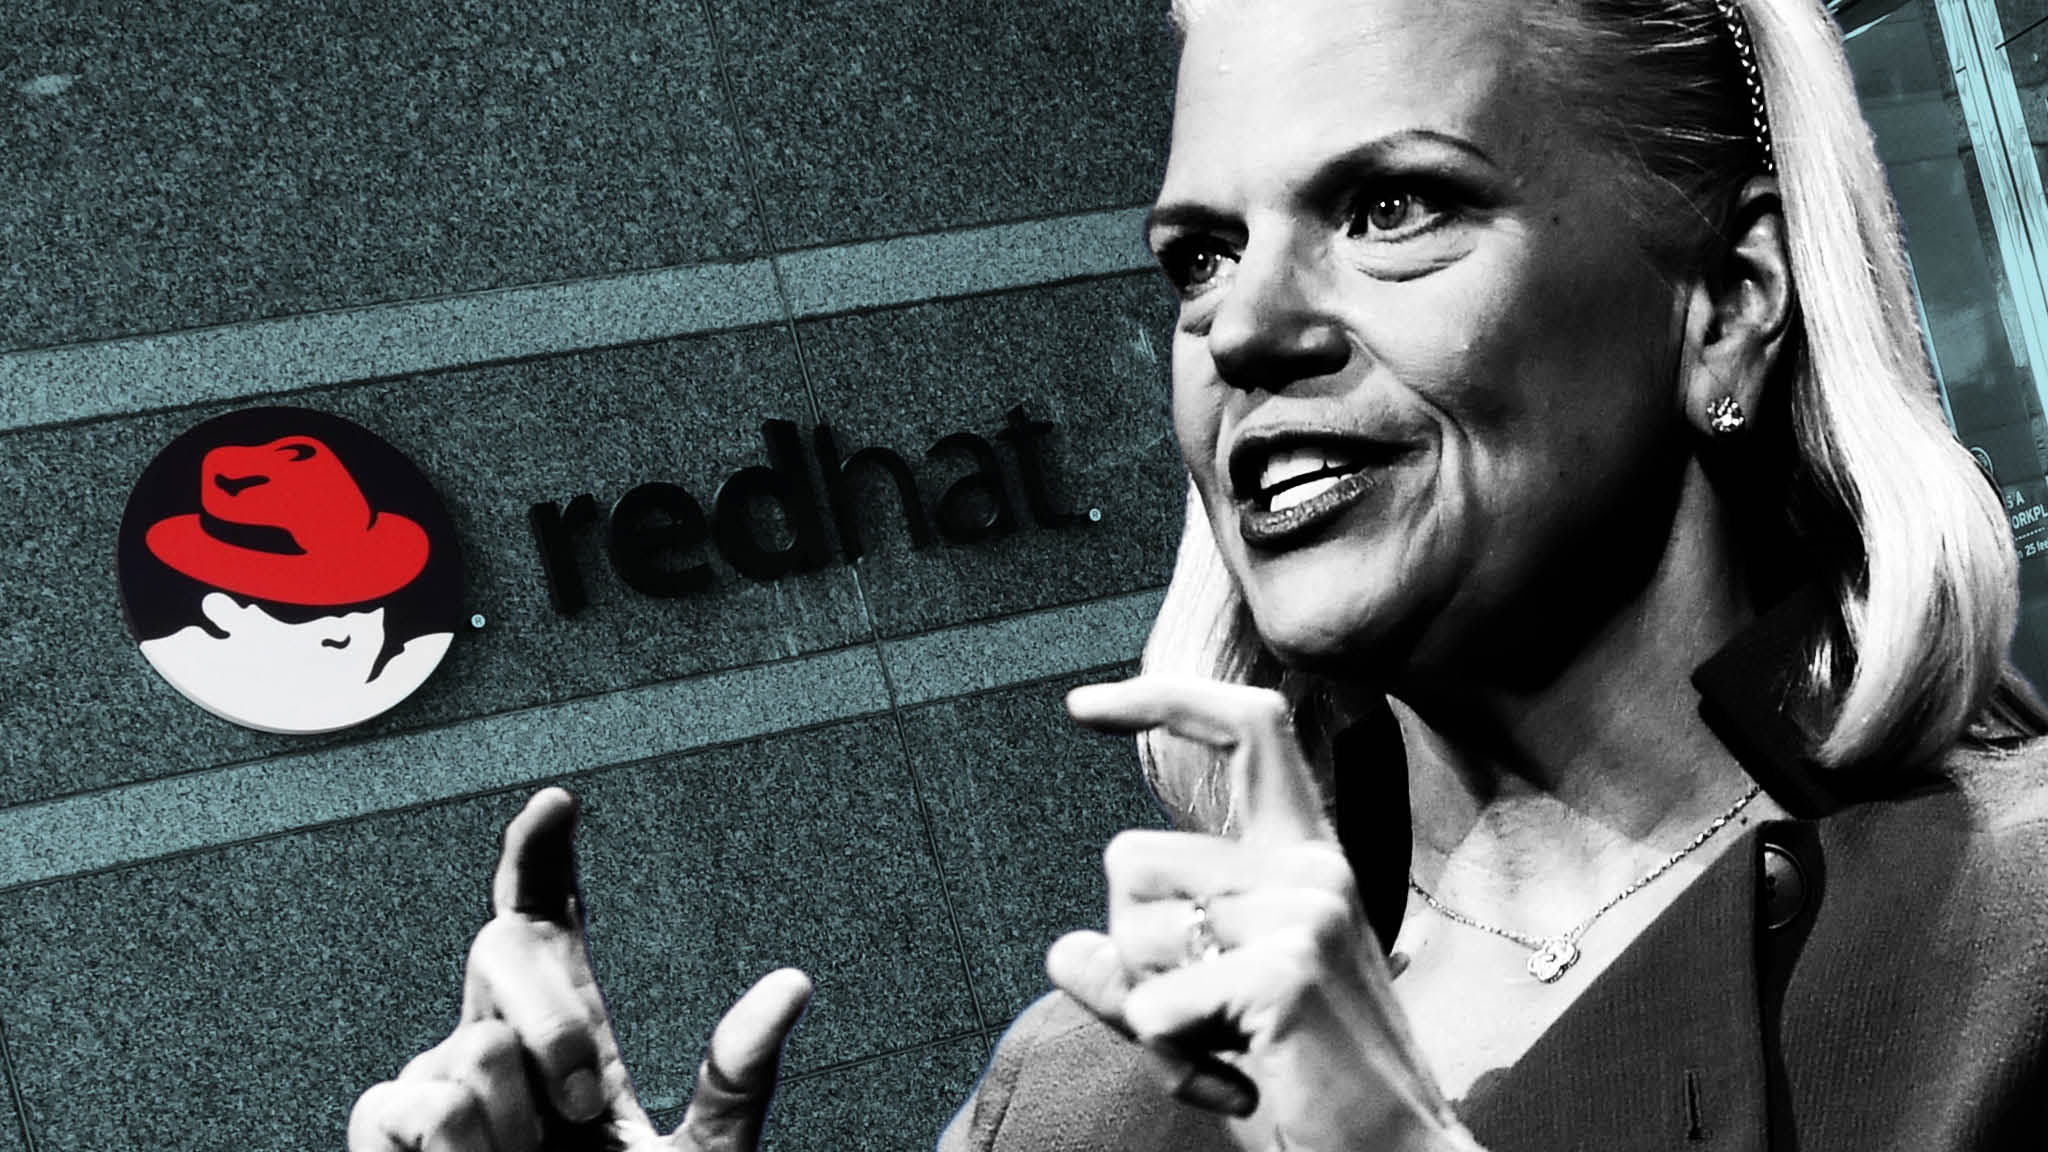 IBM hopes to stay relevant with Red Hat deal